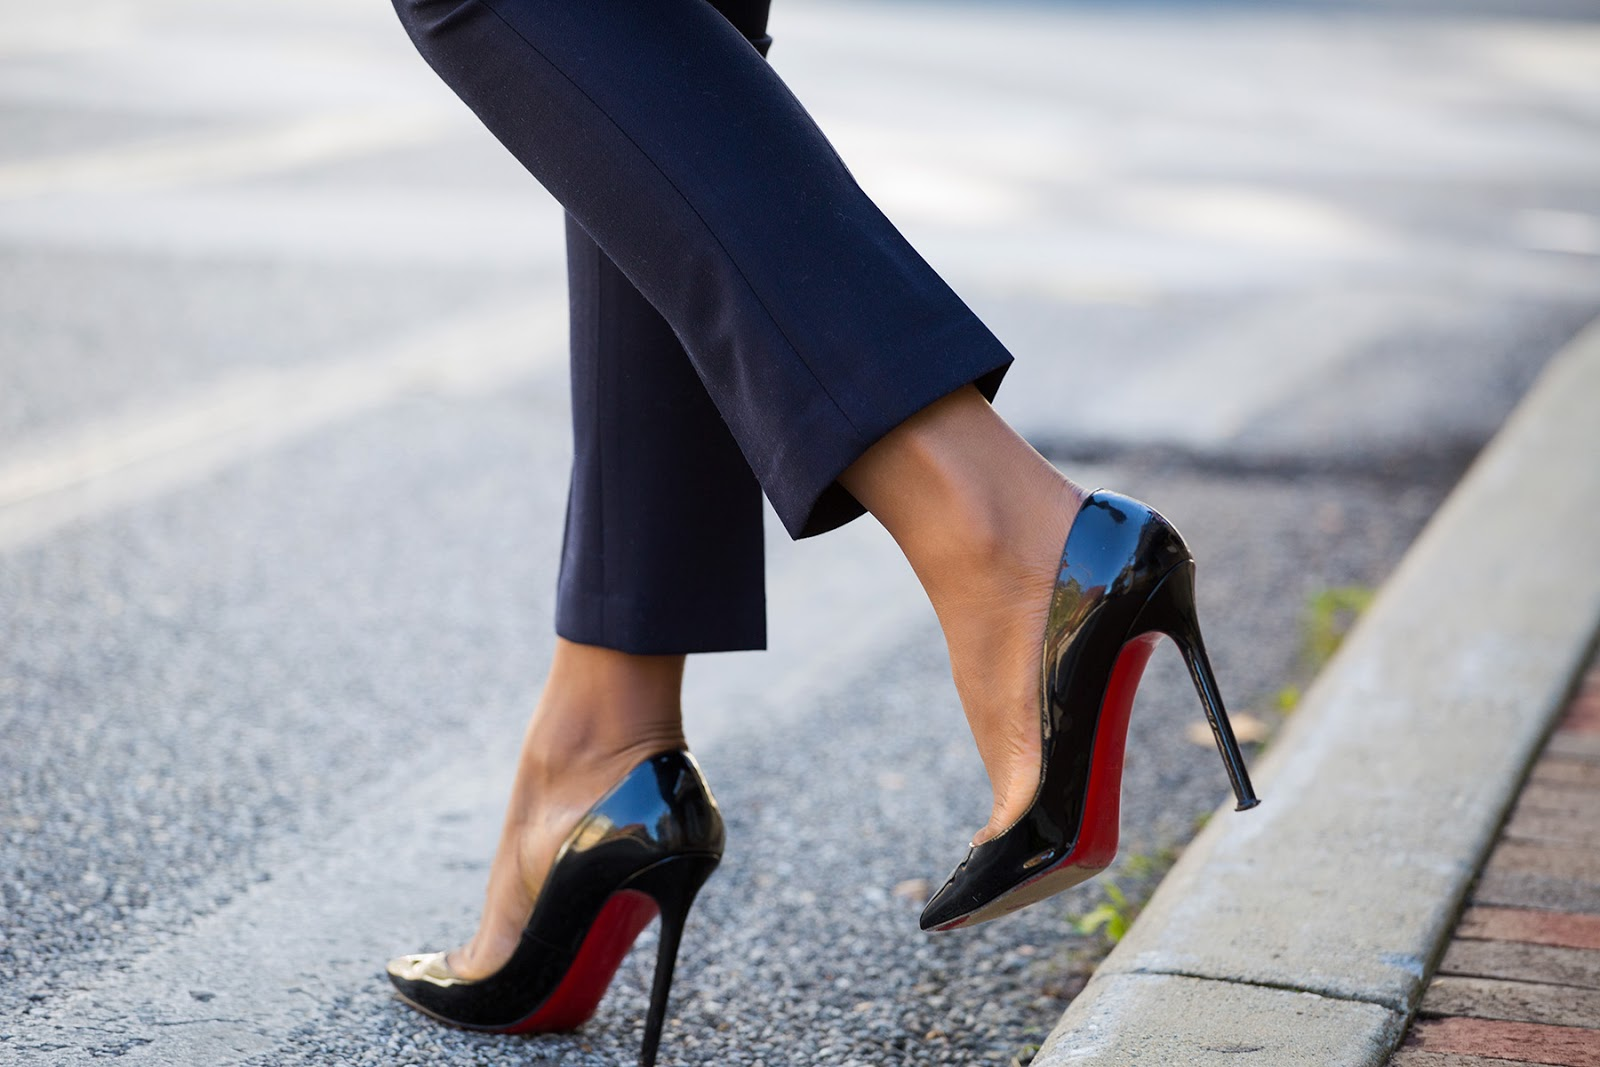 Christian louboutin pumps, jadore-fashion.com